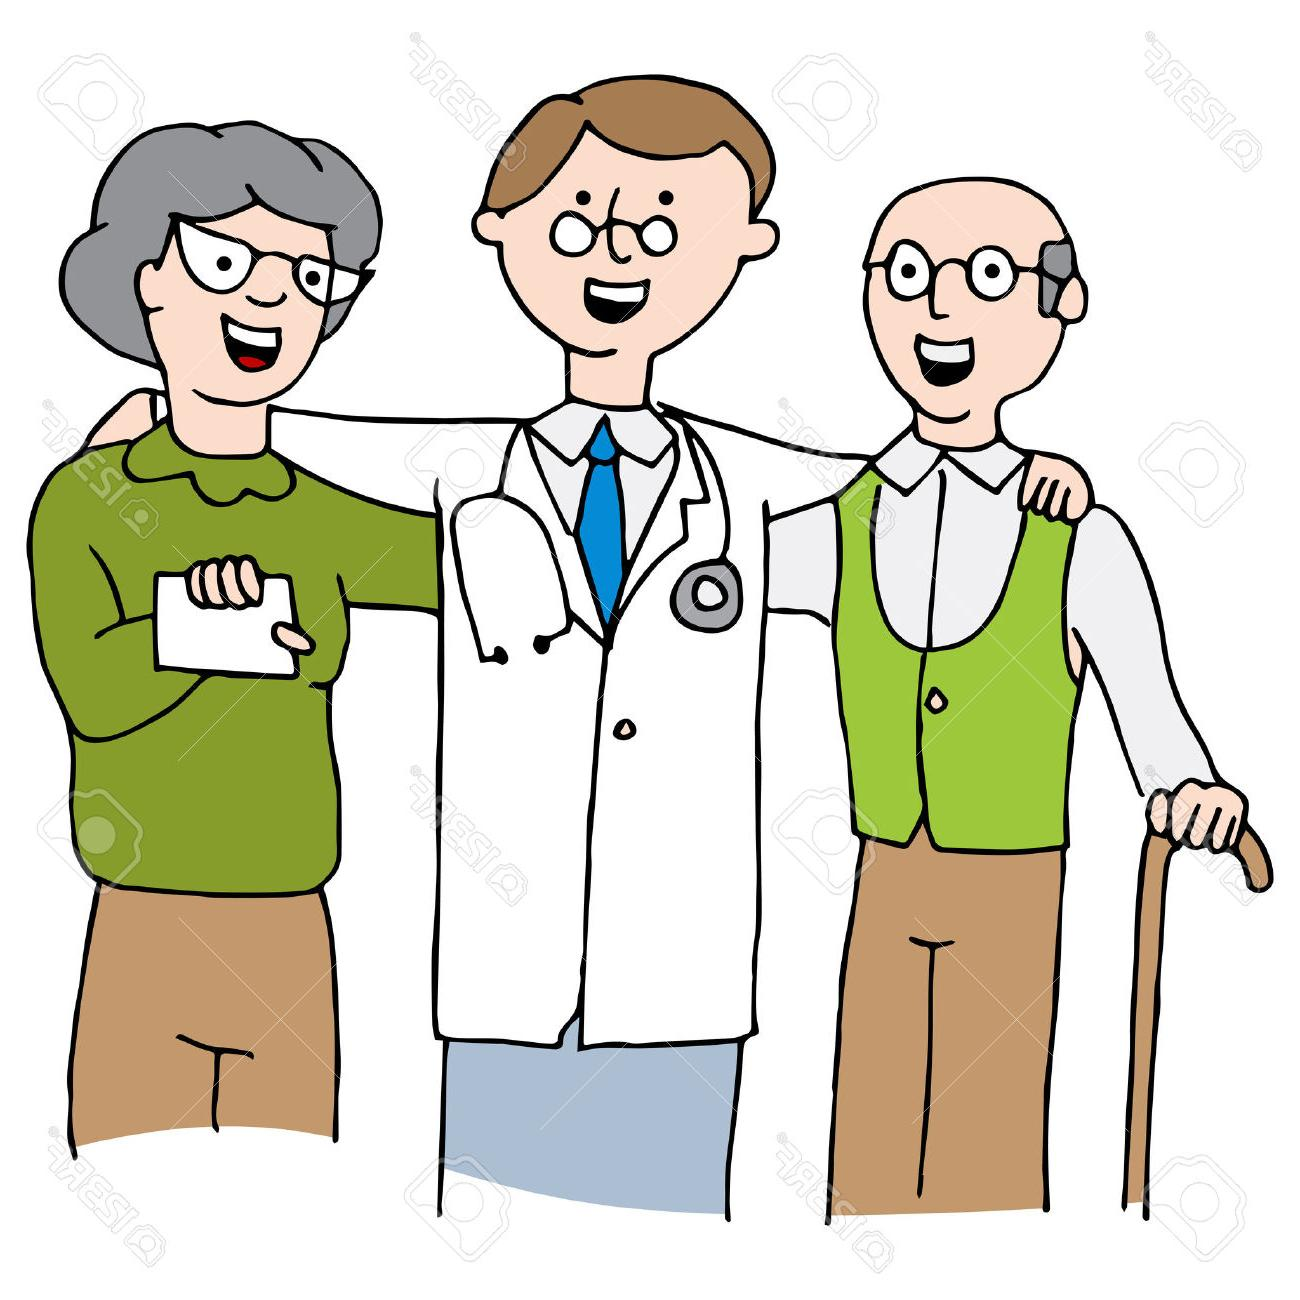 Bibliography clipart library computer. Top doctor patient relationship